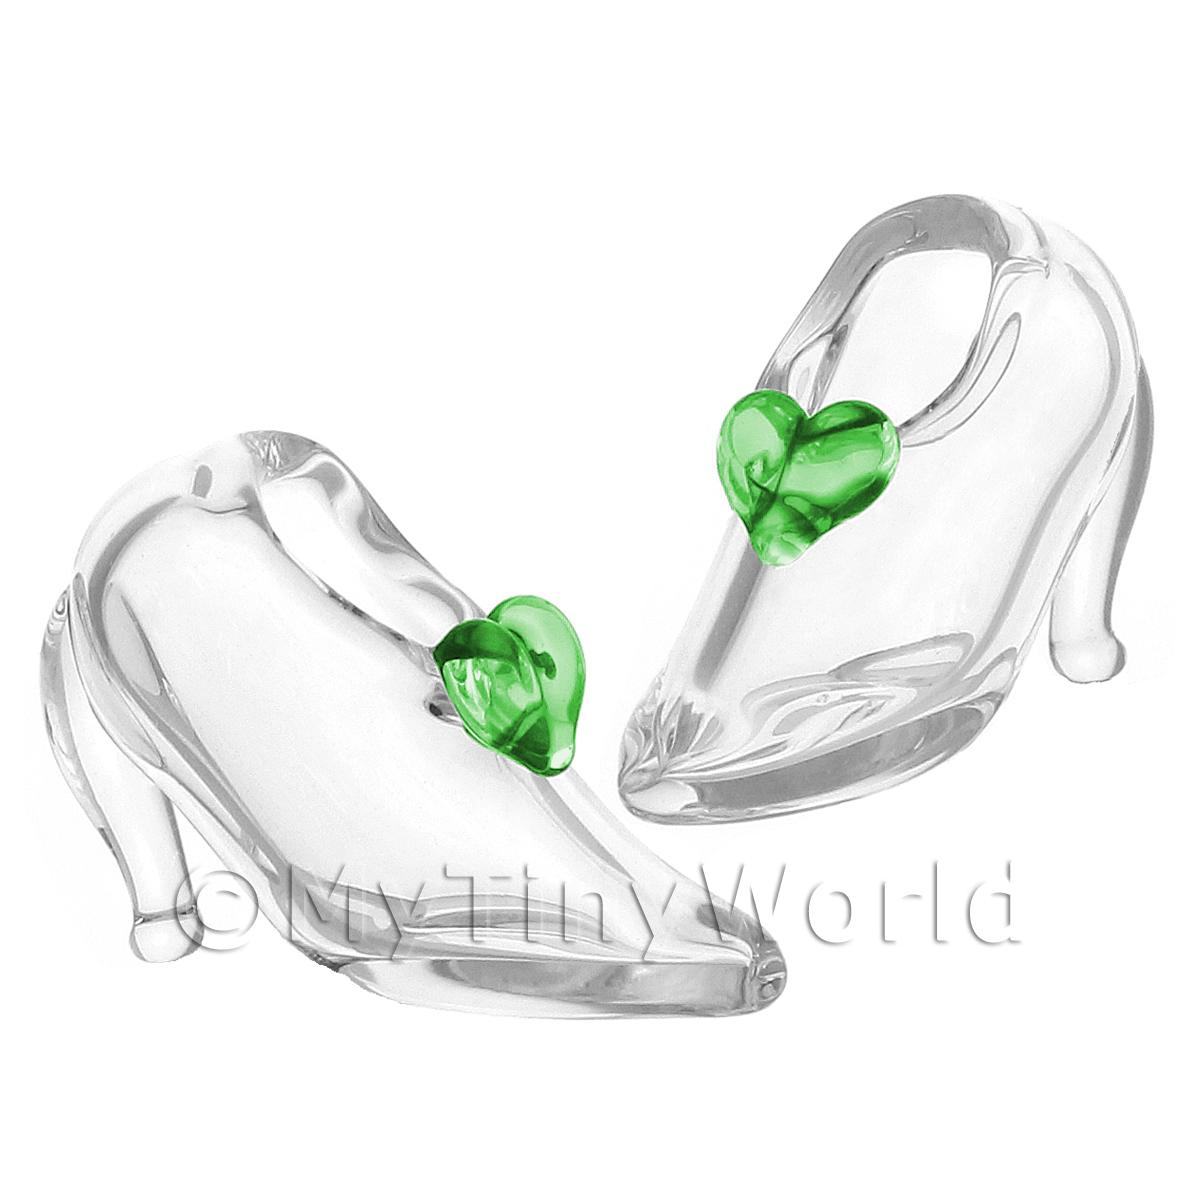 Details about Handmade PALE GREEN Glass Shoes Dolls House Miniatures